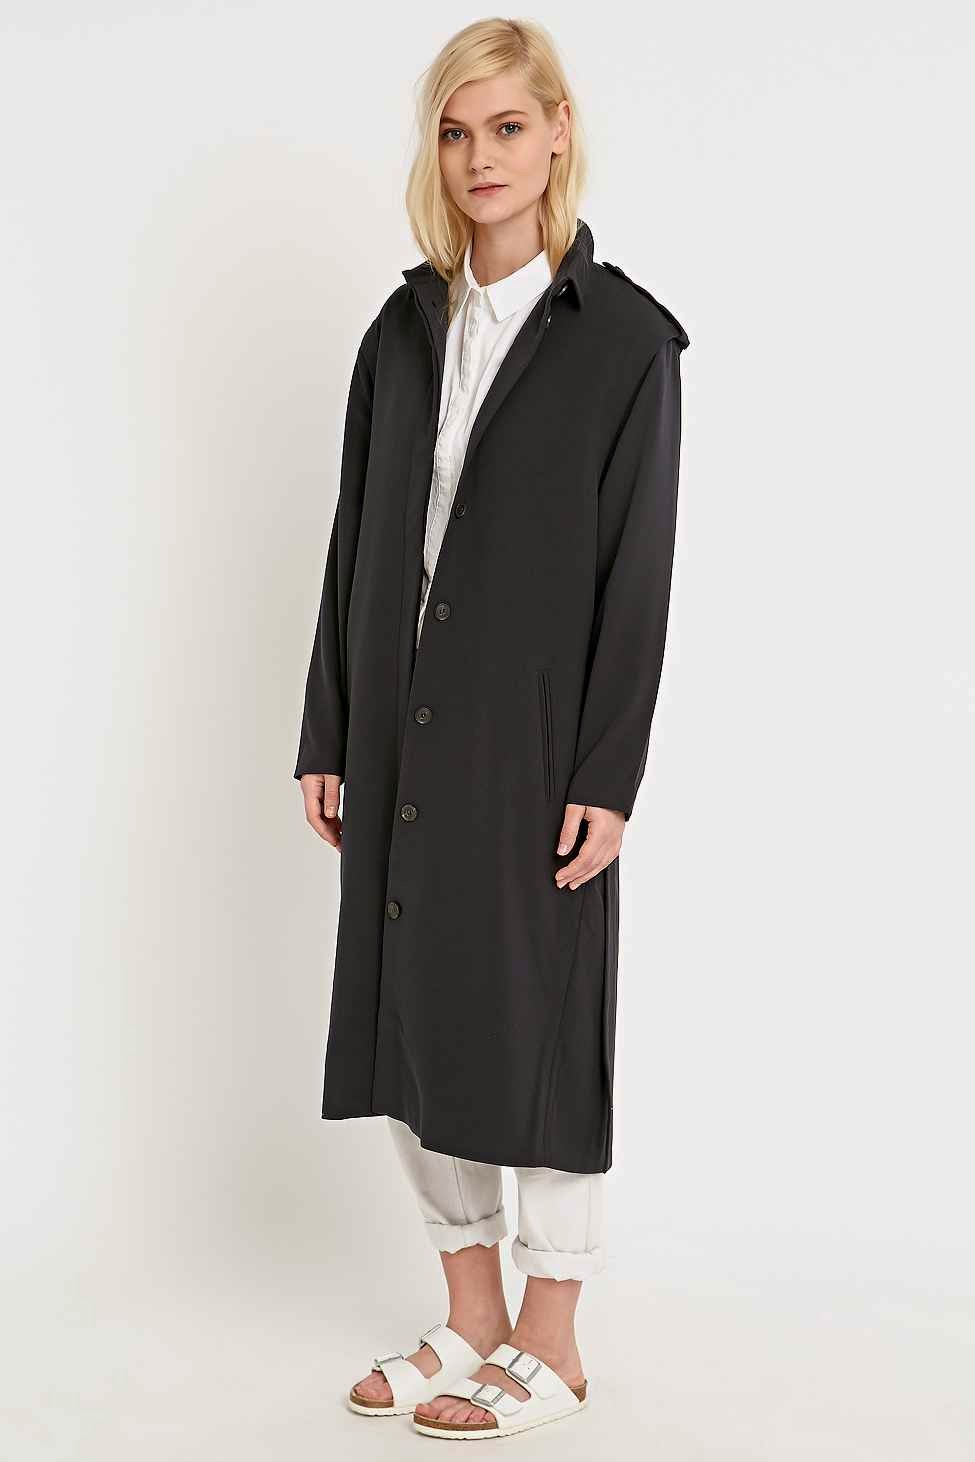 urban outfitters long black coat, selected femme black coat